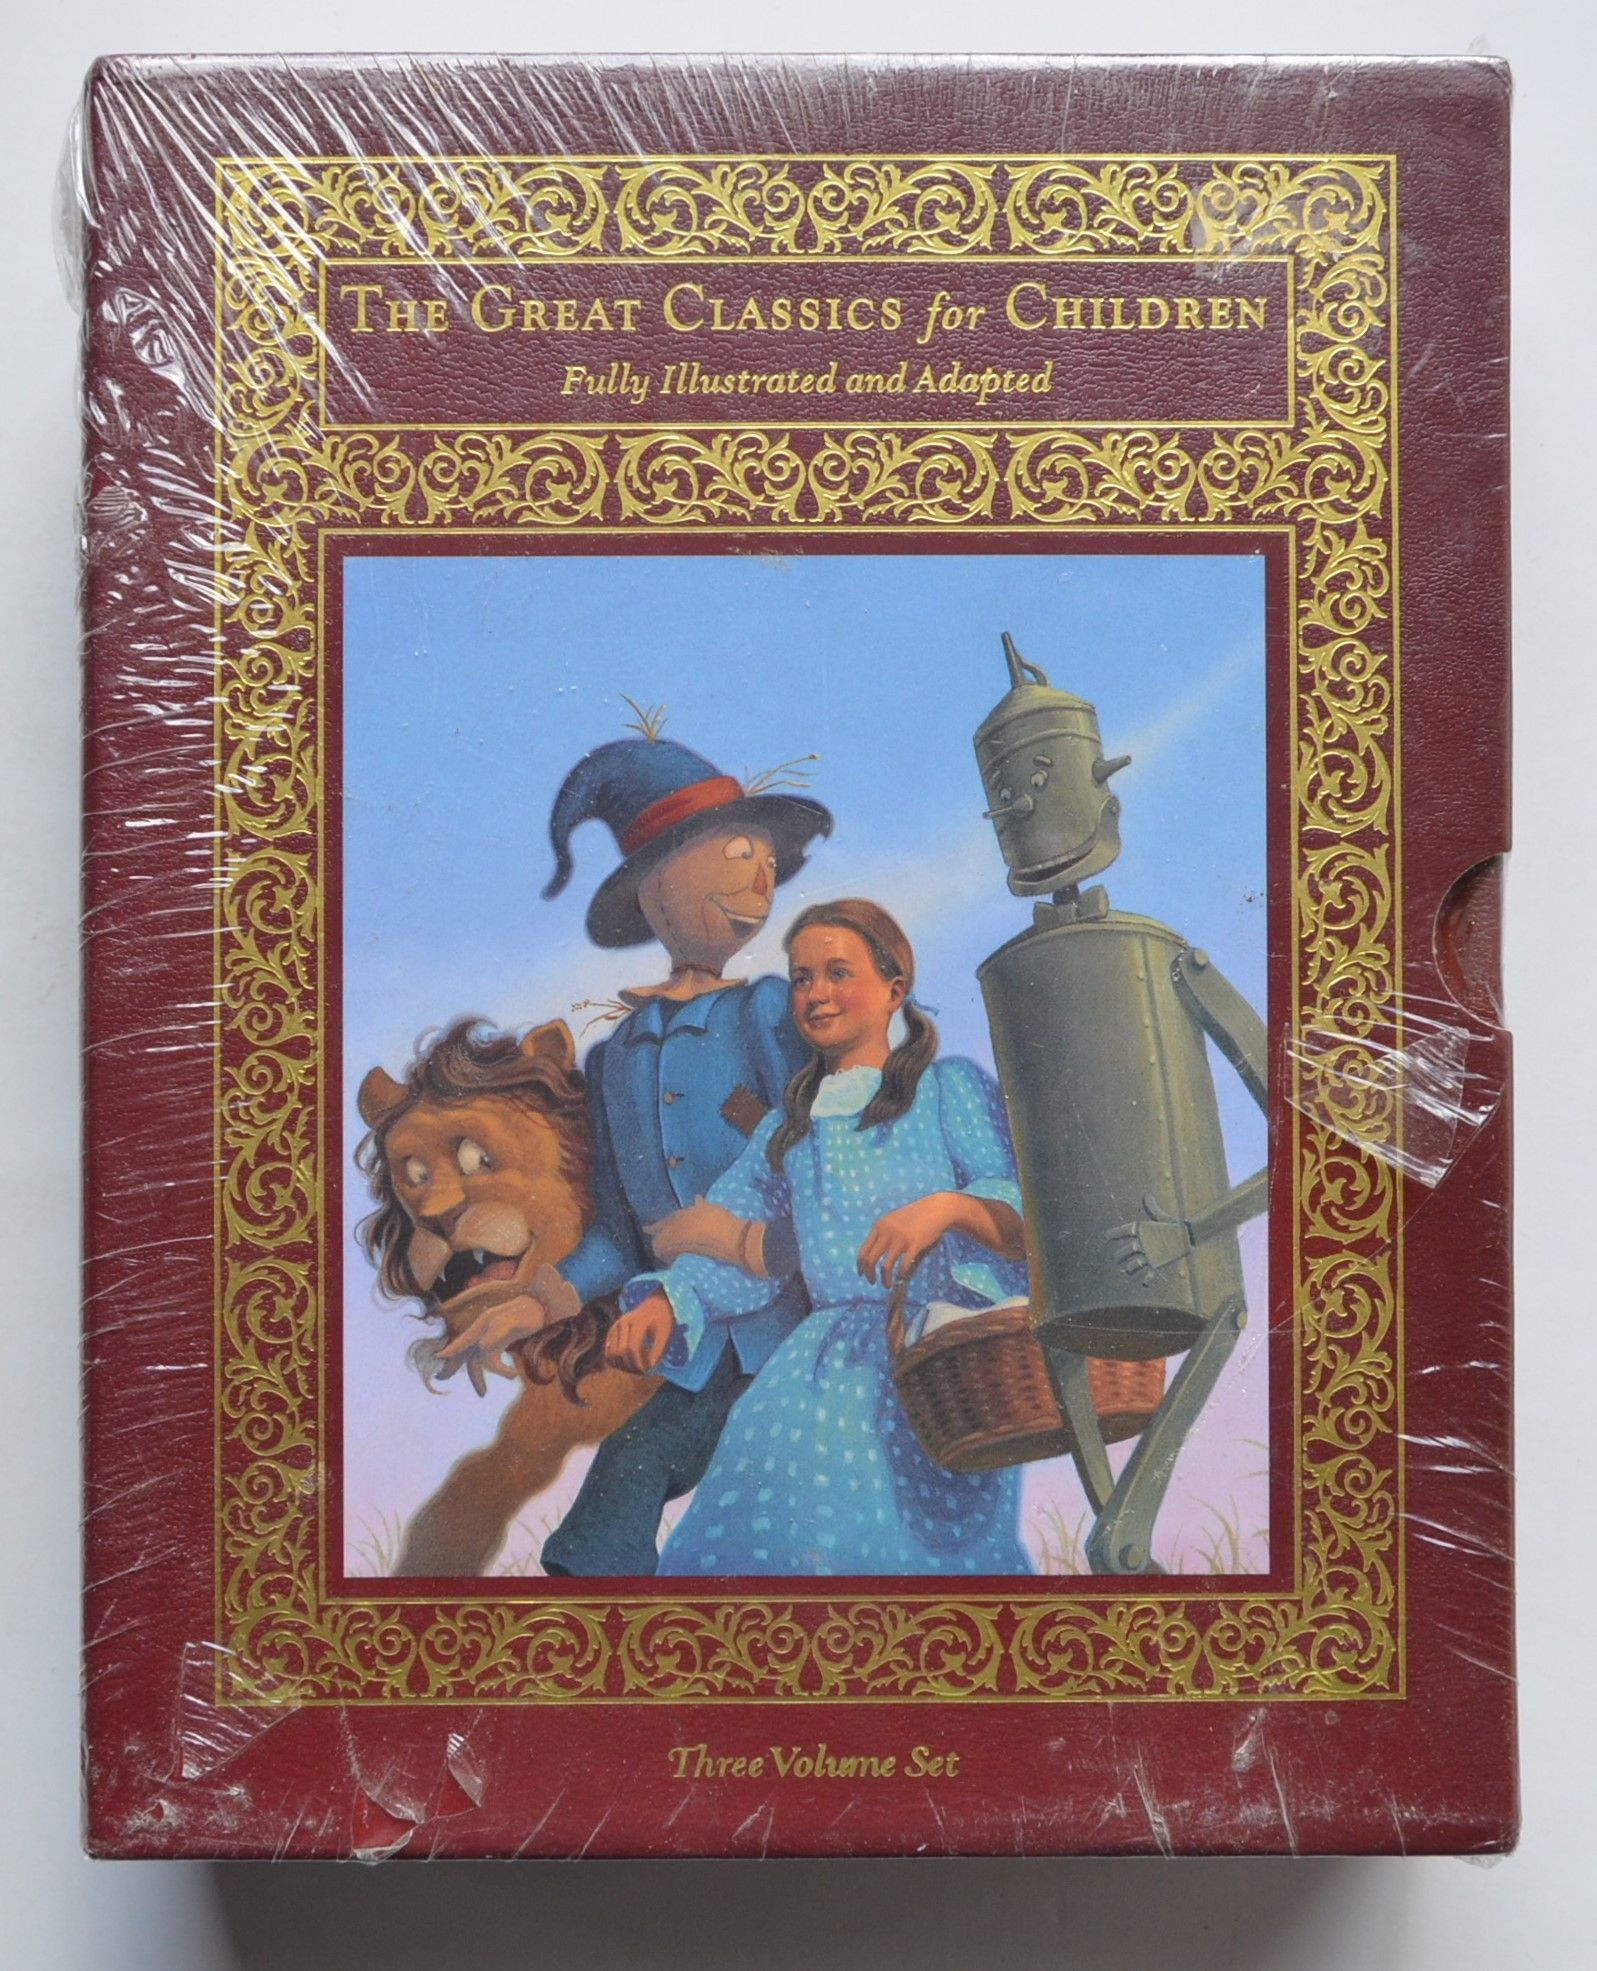 The Great Classics for Children : Peter Pan, The Wind in the Willows, and The Wonderful Wizard of Oz by J.M. Barrie, Kenneth Graham, L. Frank Baum.